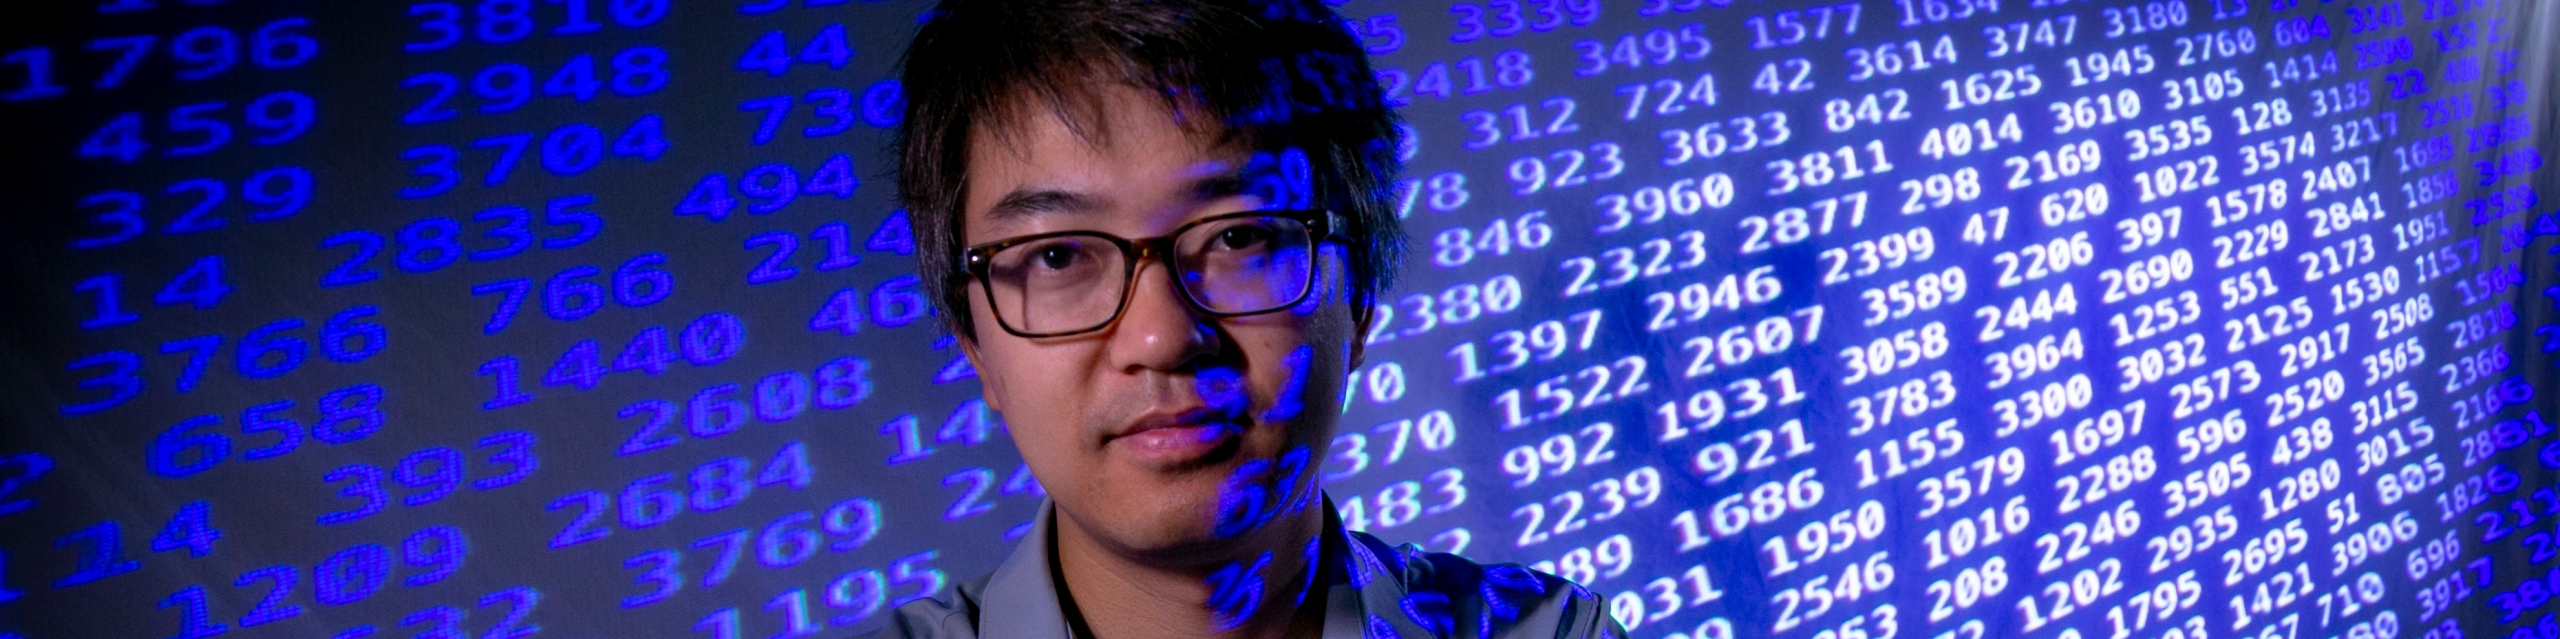 Neil Gong, assistant professor of electrical and computer engineering at Duke University.